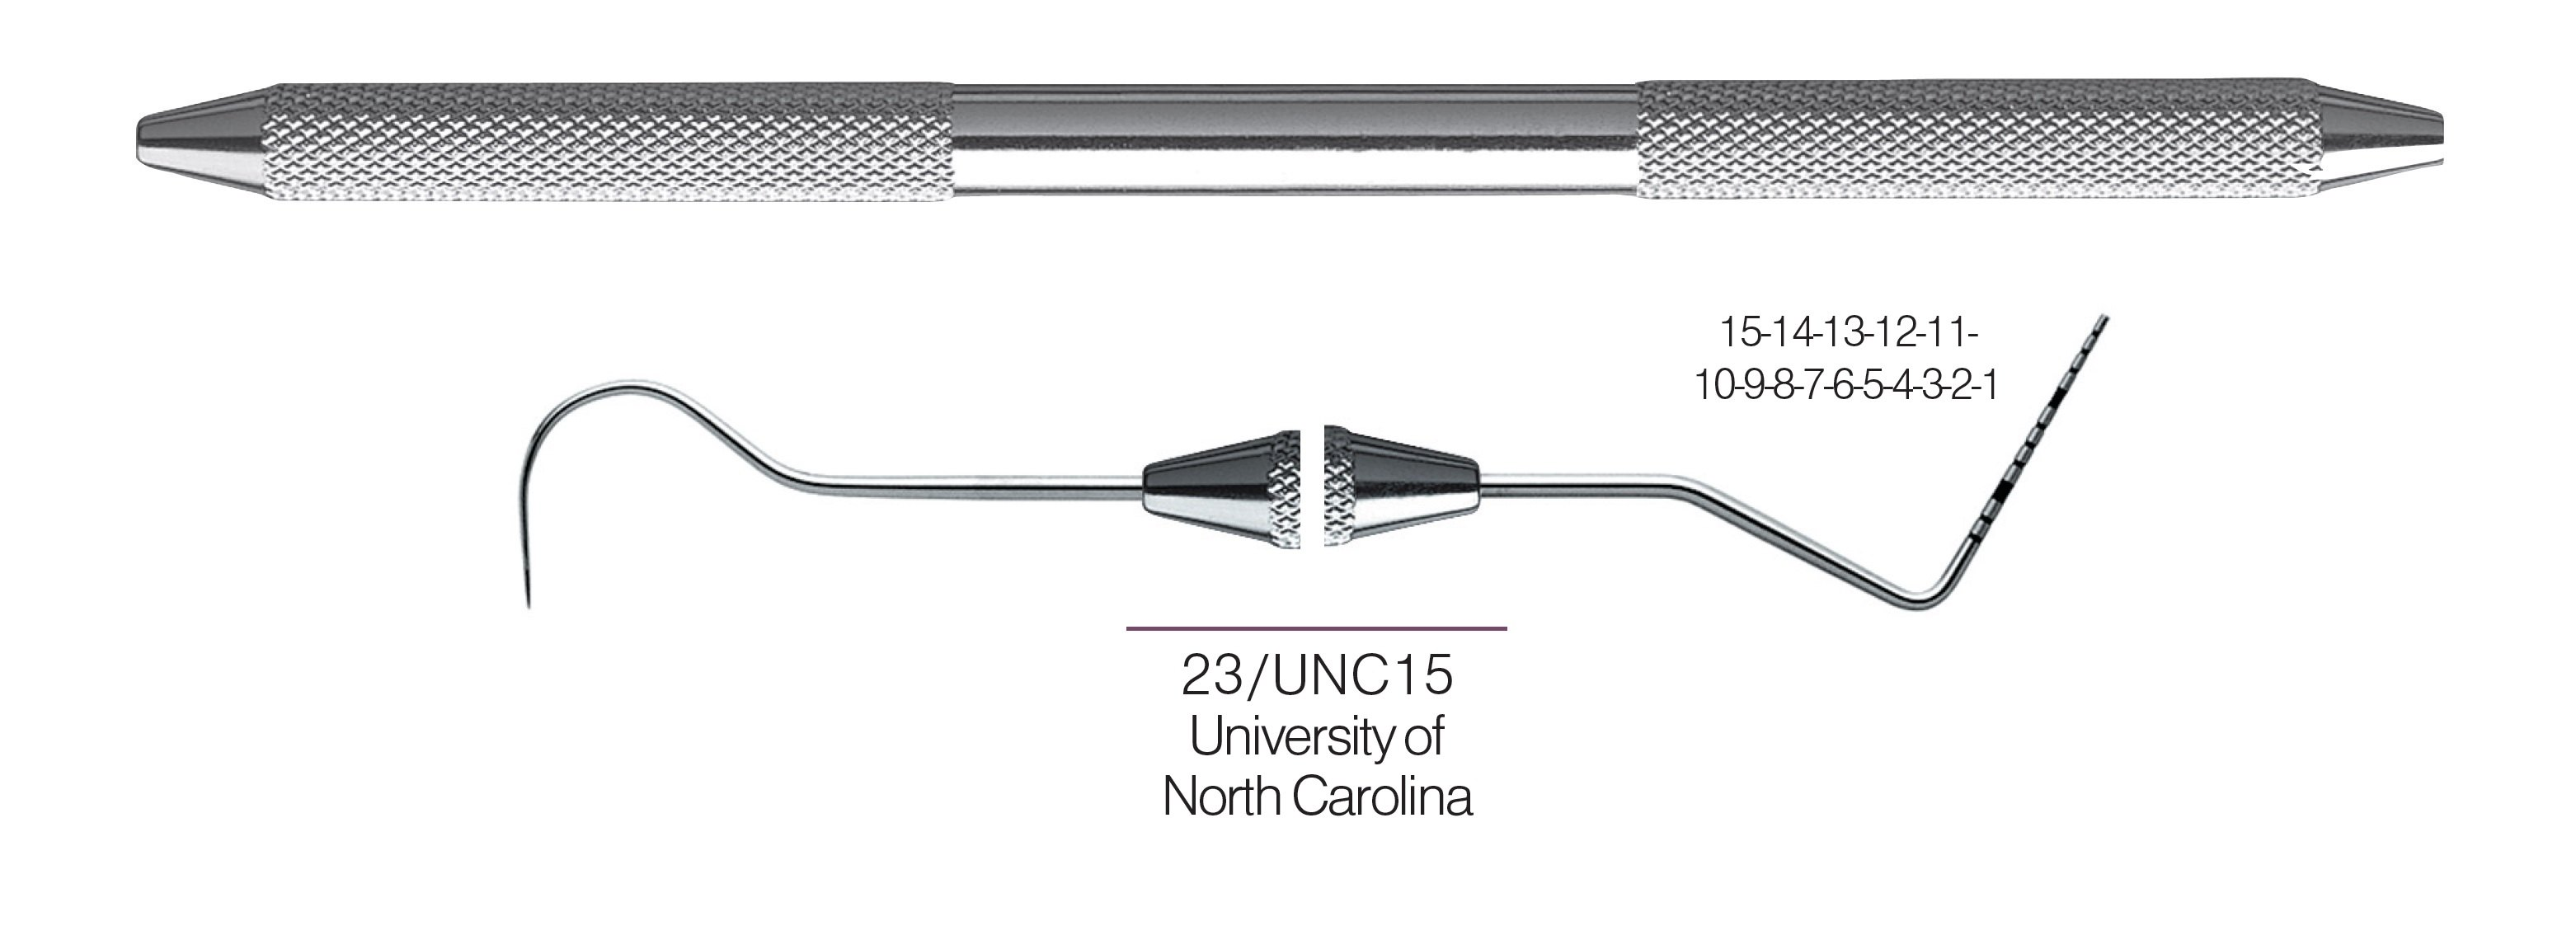 HF-XP23-UNC15-31, EXPROS, Explorer #23/UNC15 Probes, Black markings, 15-14-13-12-11-10-9-8-7-6-5-4-3-2-1 mm, Handle round, Double Ended